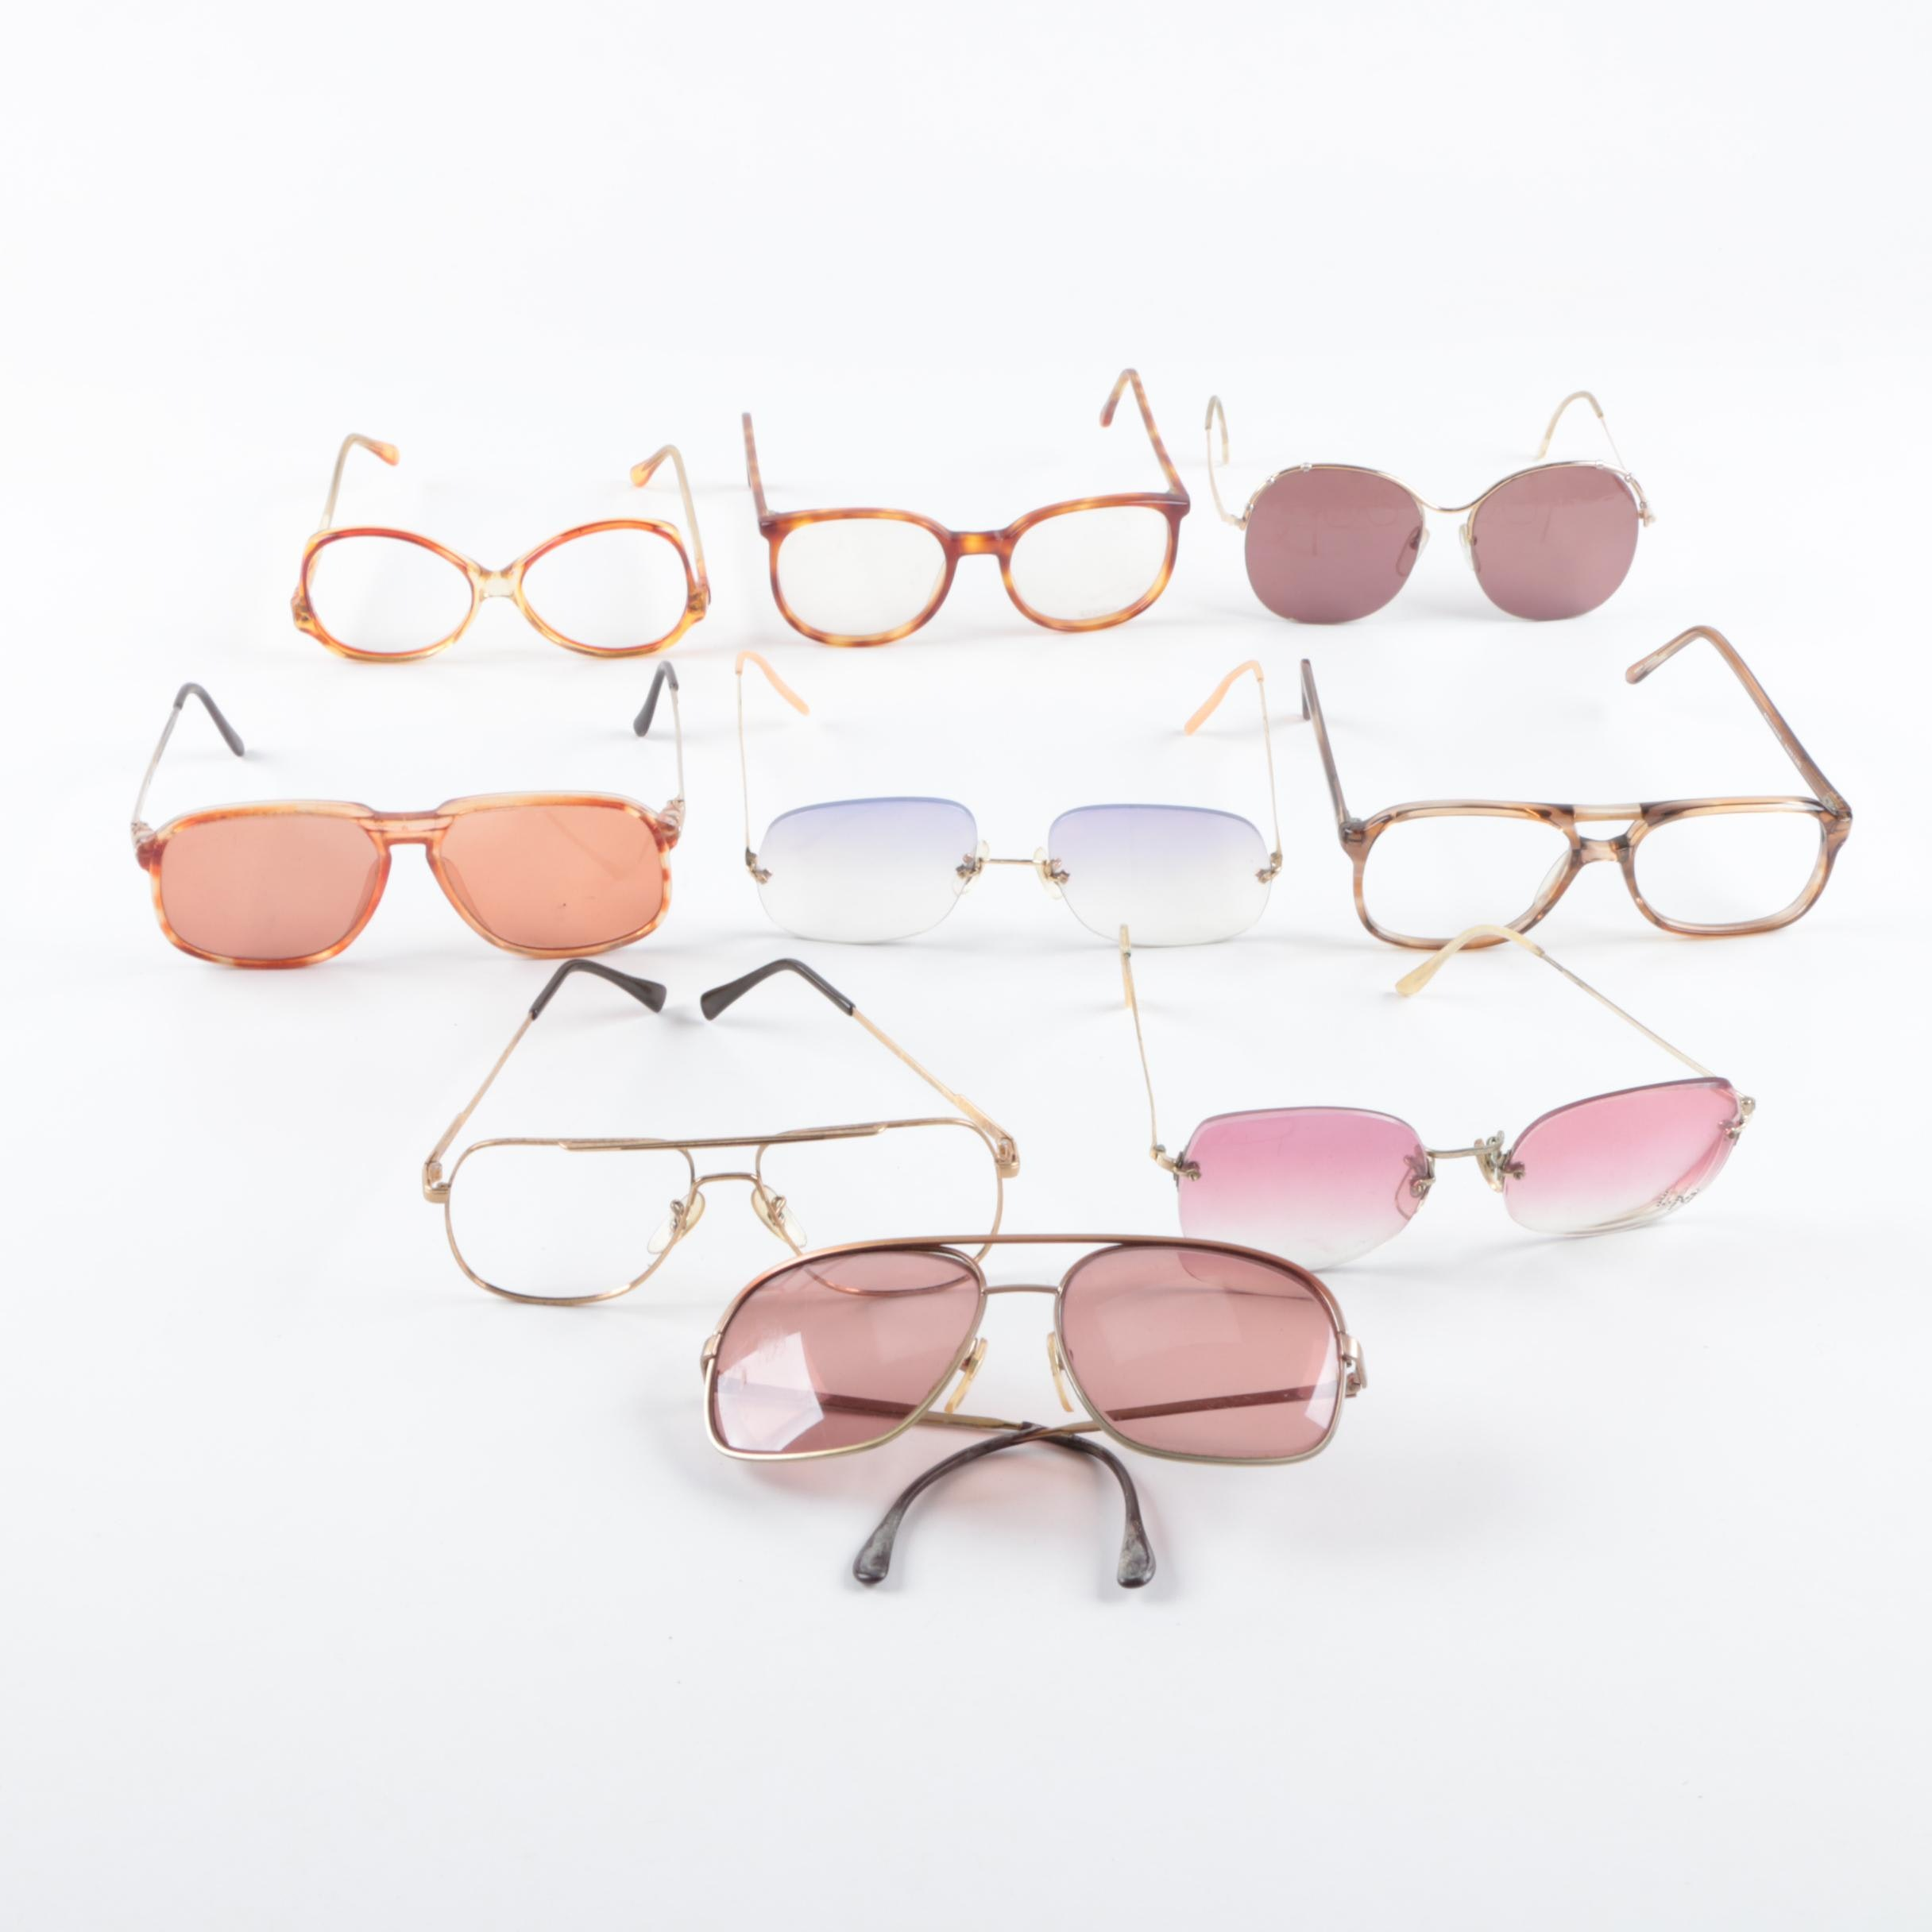 Vintage and Fashion Eyeglasses and Sunglasses